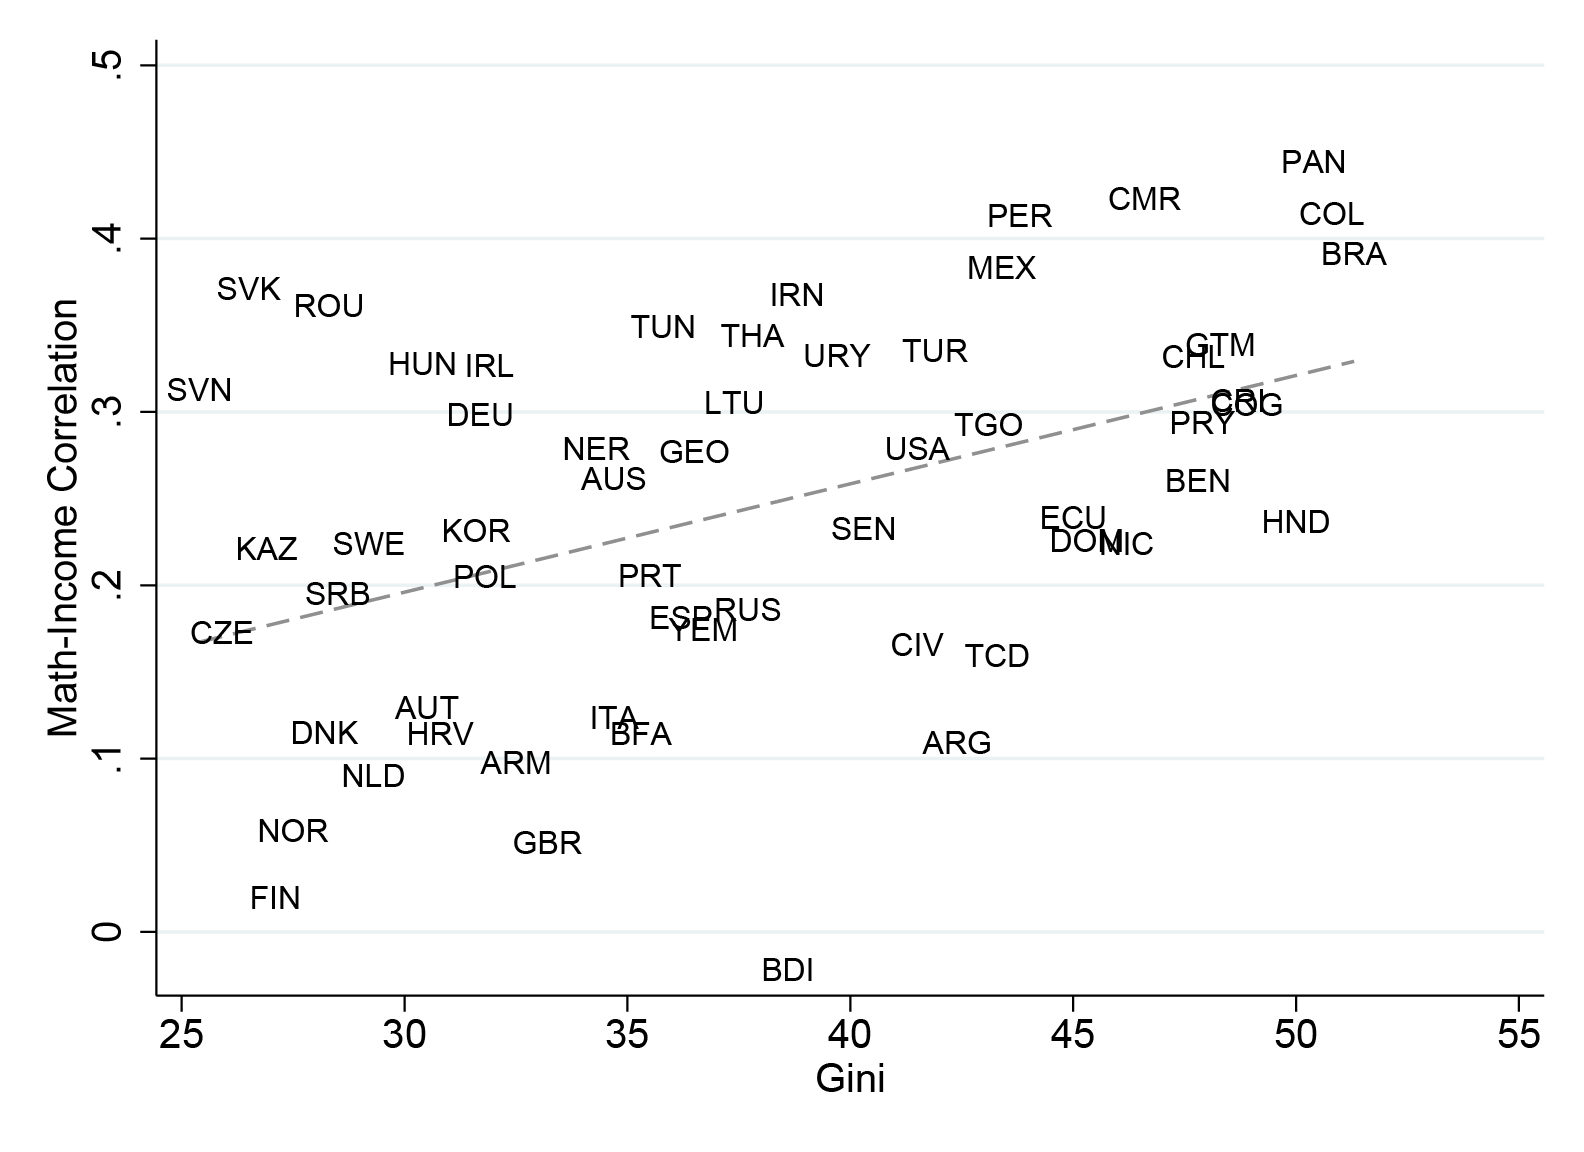 Scatter plot of Gini scores vs math-income correlation. A gently rising line through the middle shows that as Gini rises, so does math-income correlation